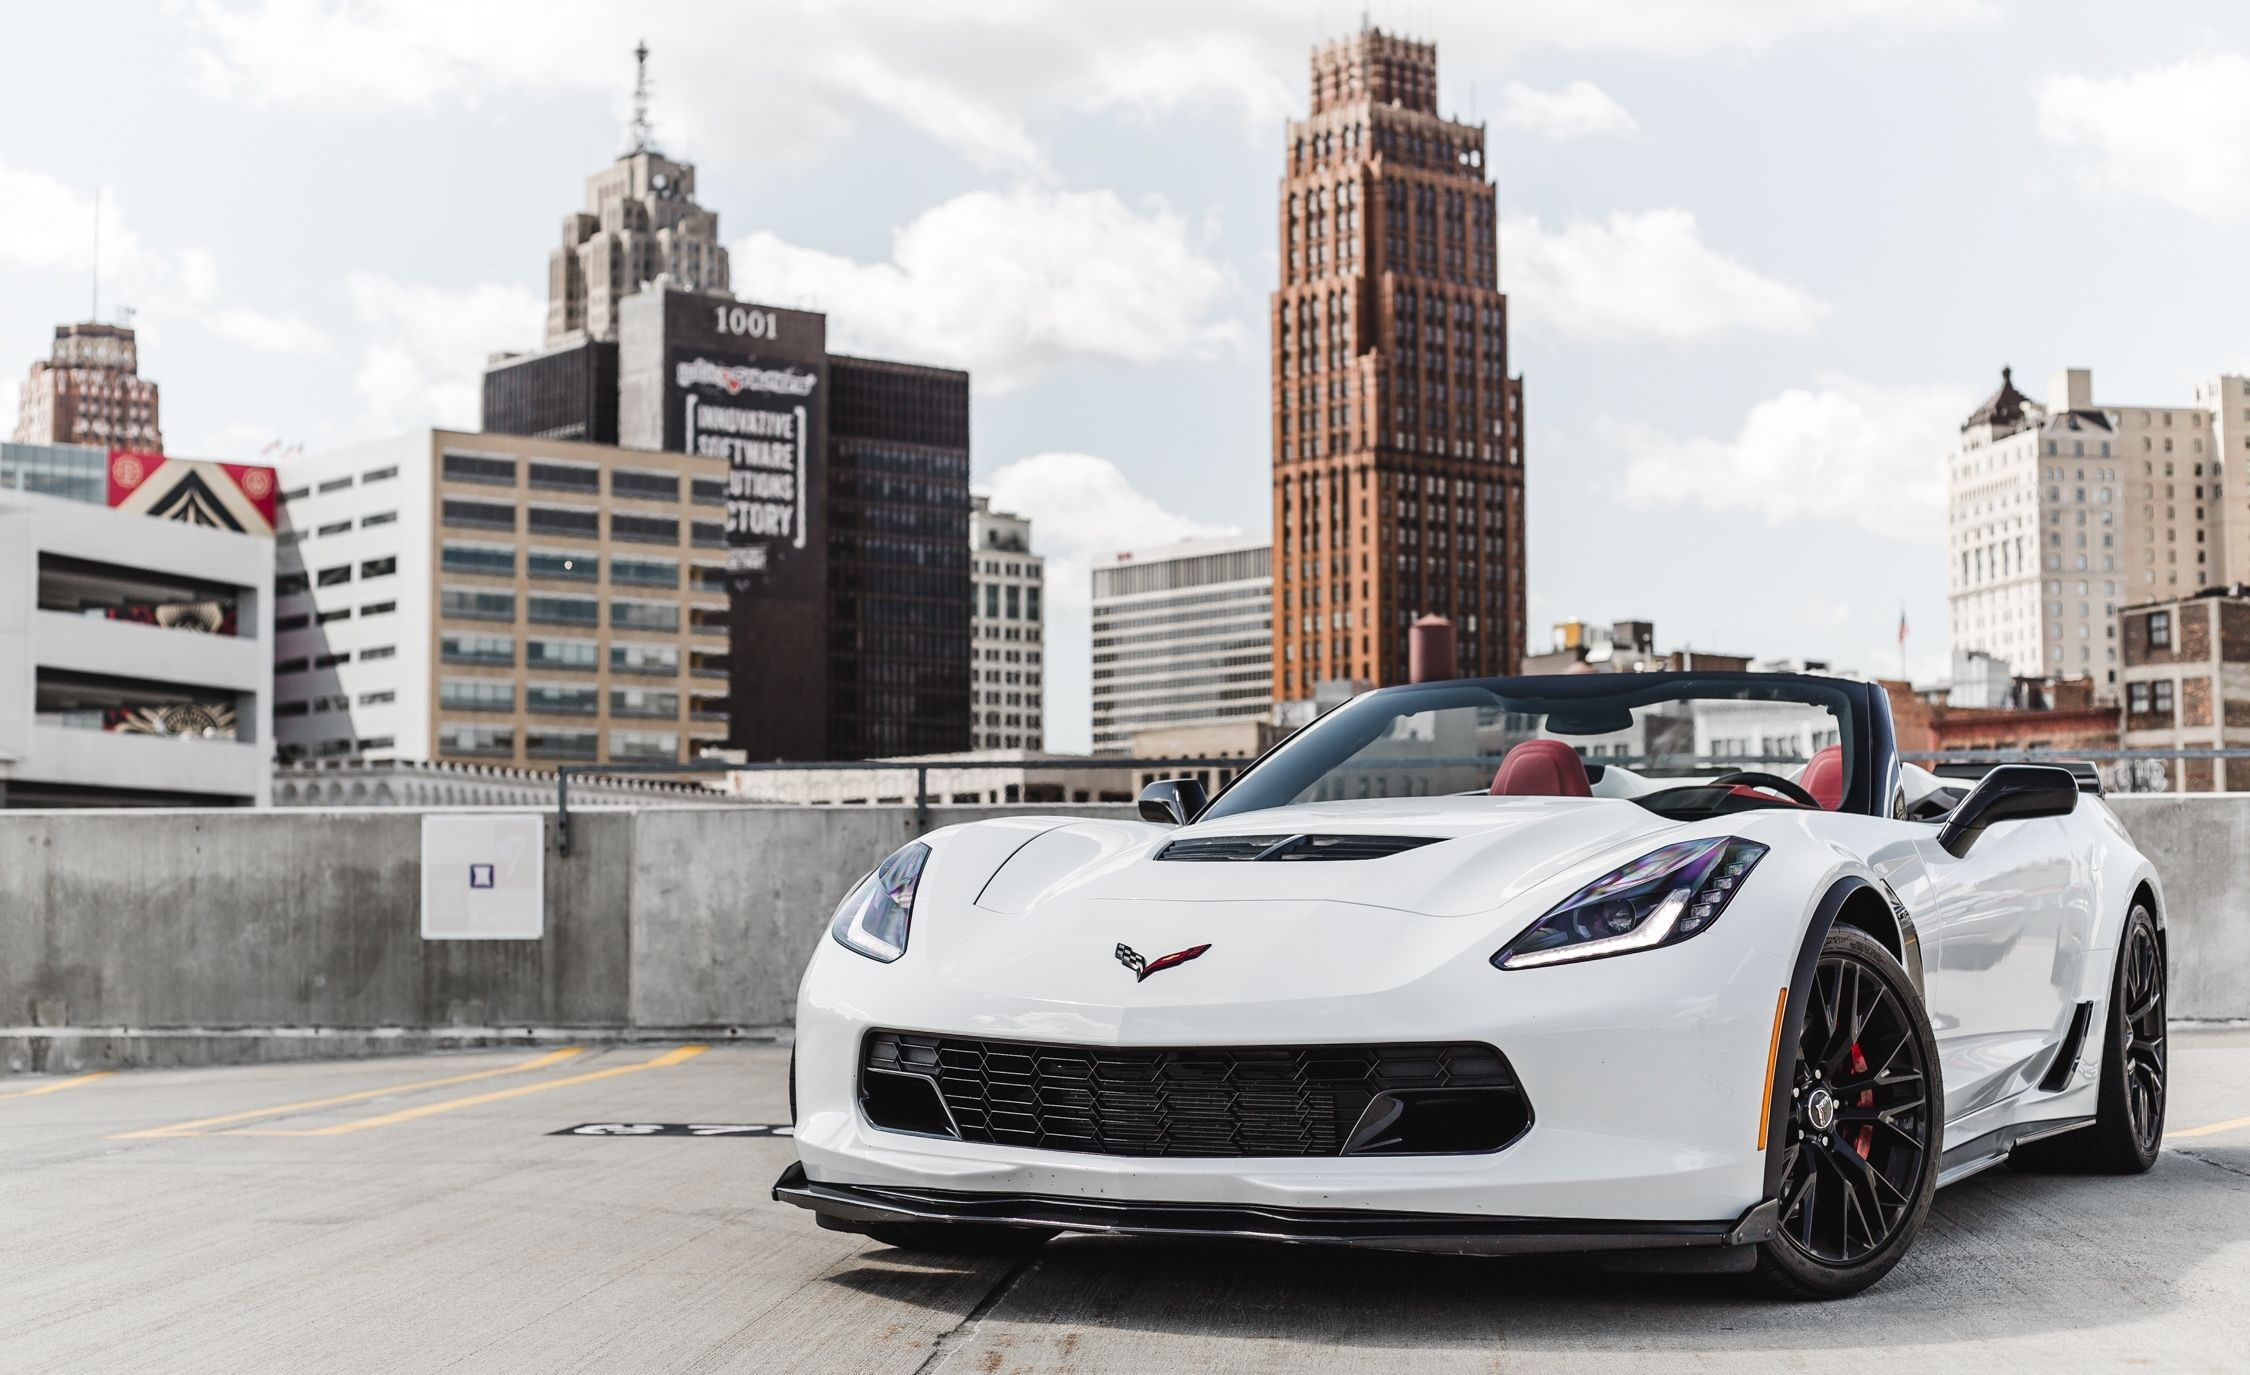 chevrolet corvette Rental in dubai,chevrolet Rental dubai